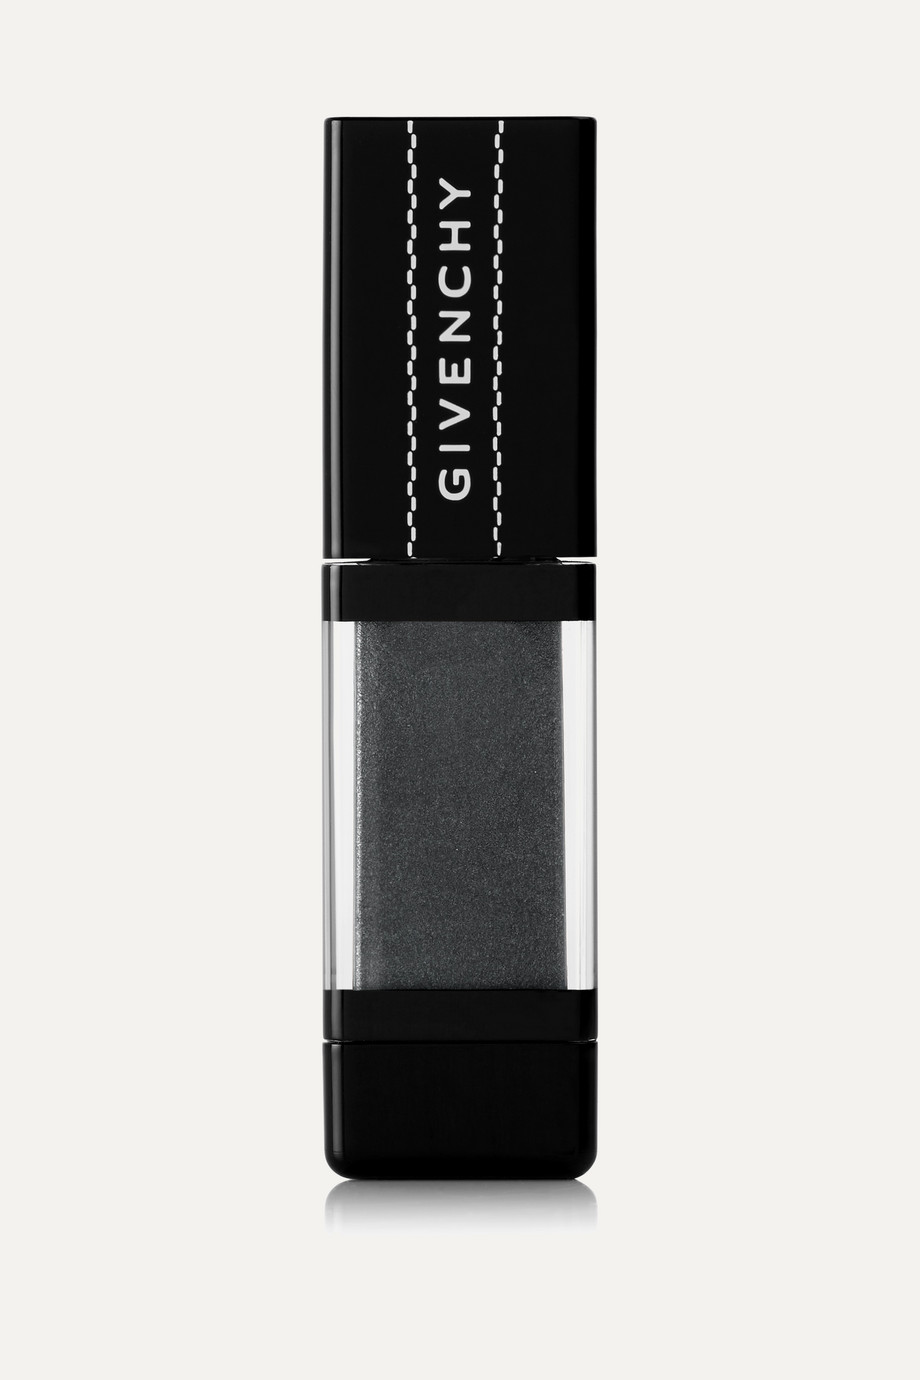 Givenchy Beauty Ombre Interdite Cream Eyeshadow - Silver Blue 06